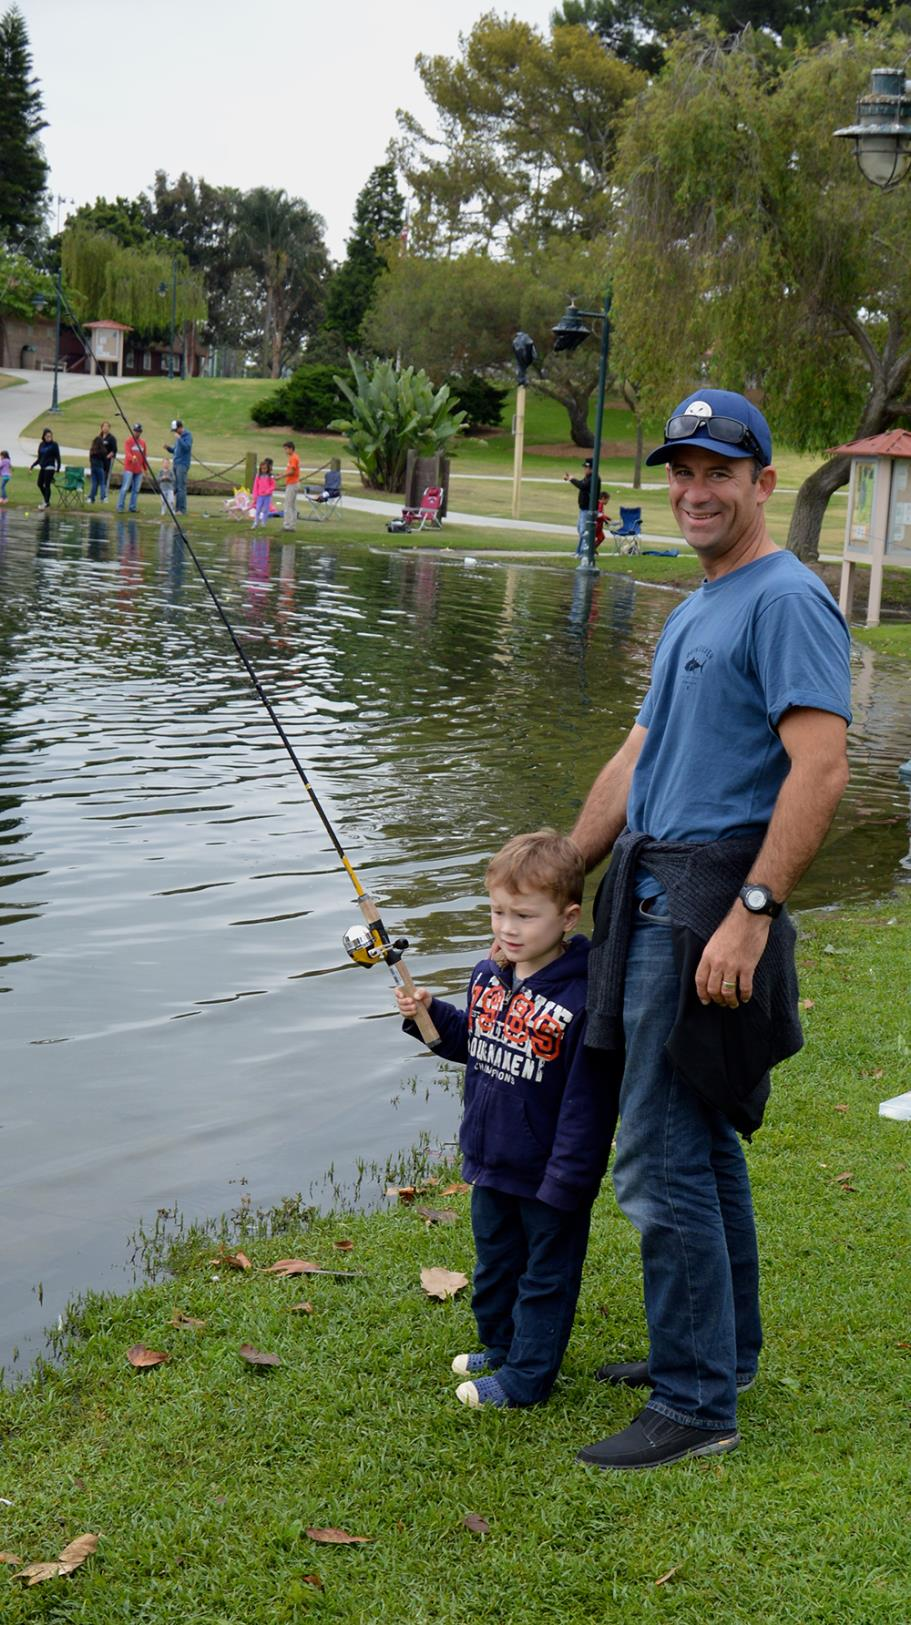 Participants in the 2015 Fishing Derby